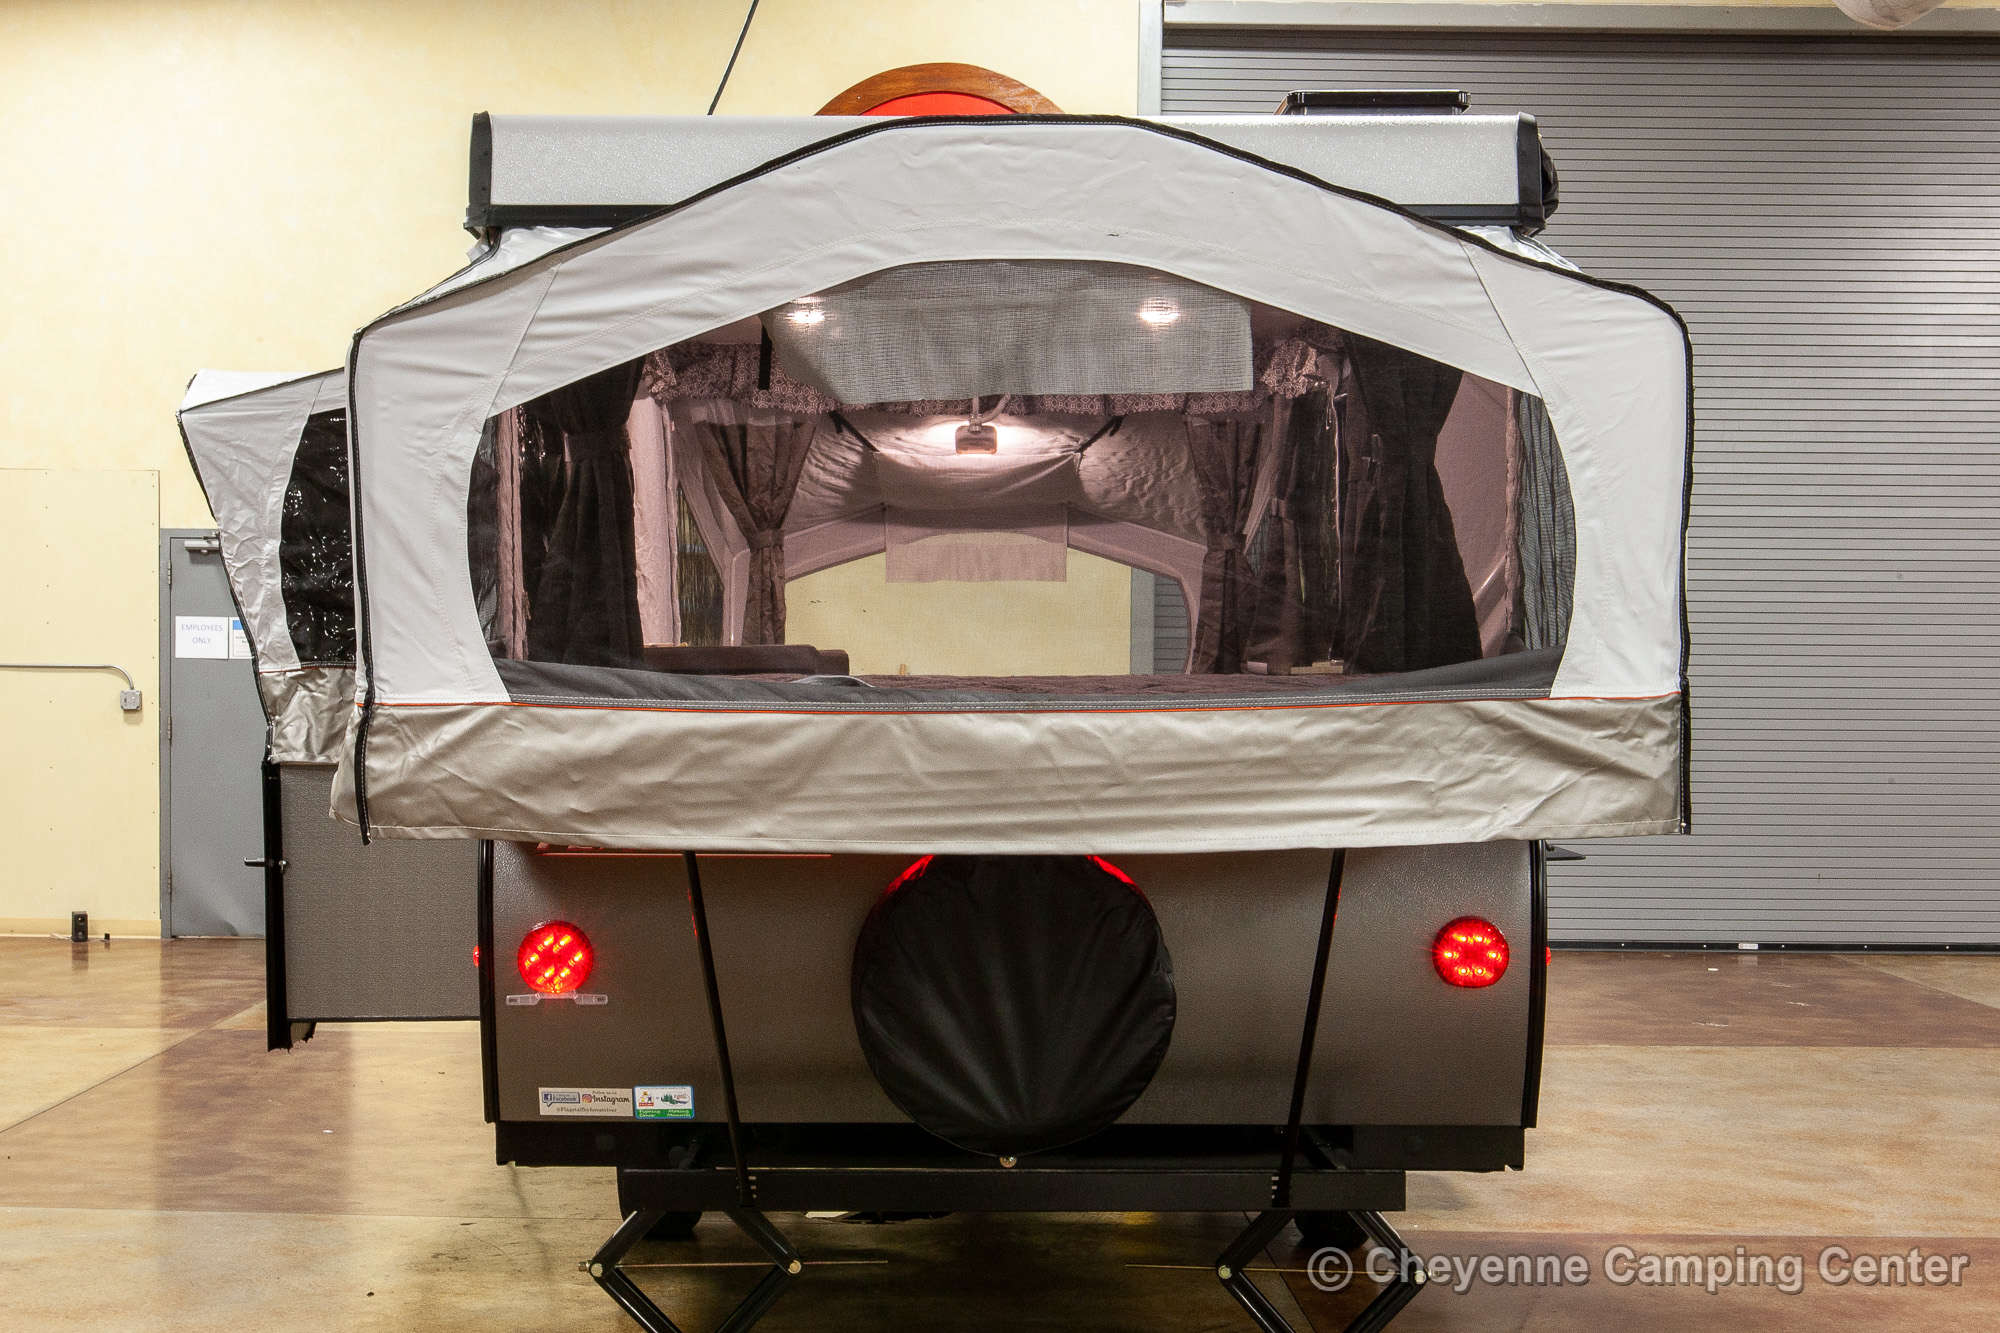 2021 Forest River Flagstaff MAC 425M Folding Camper Exterior Image